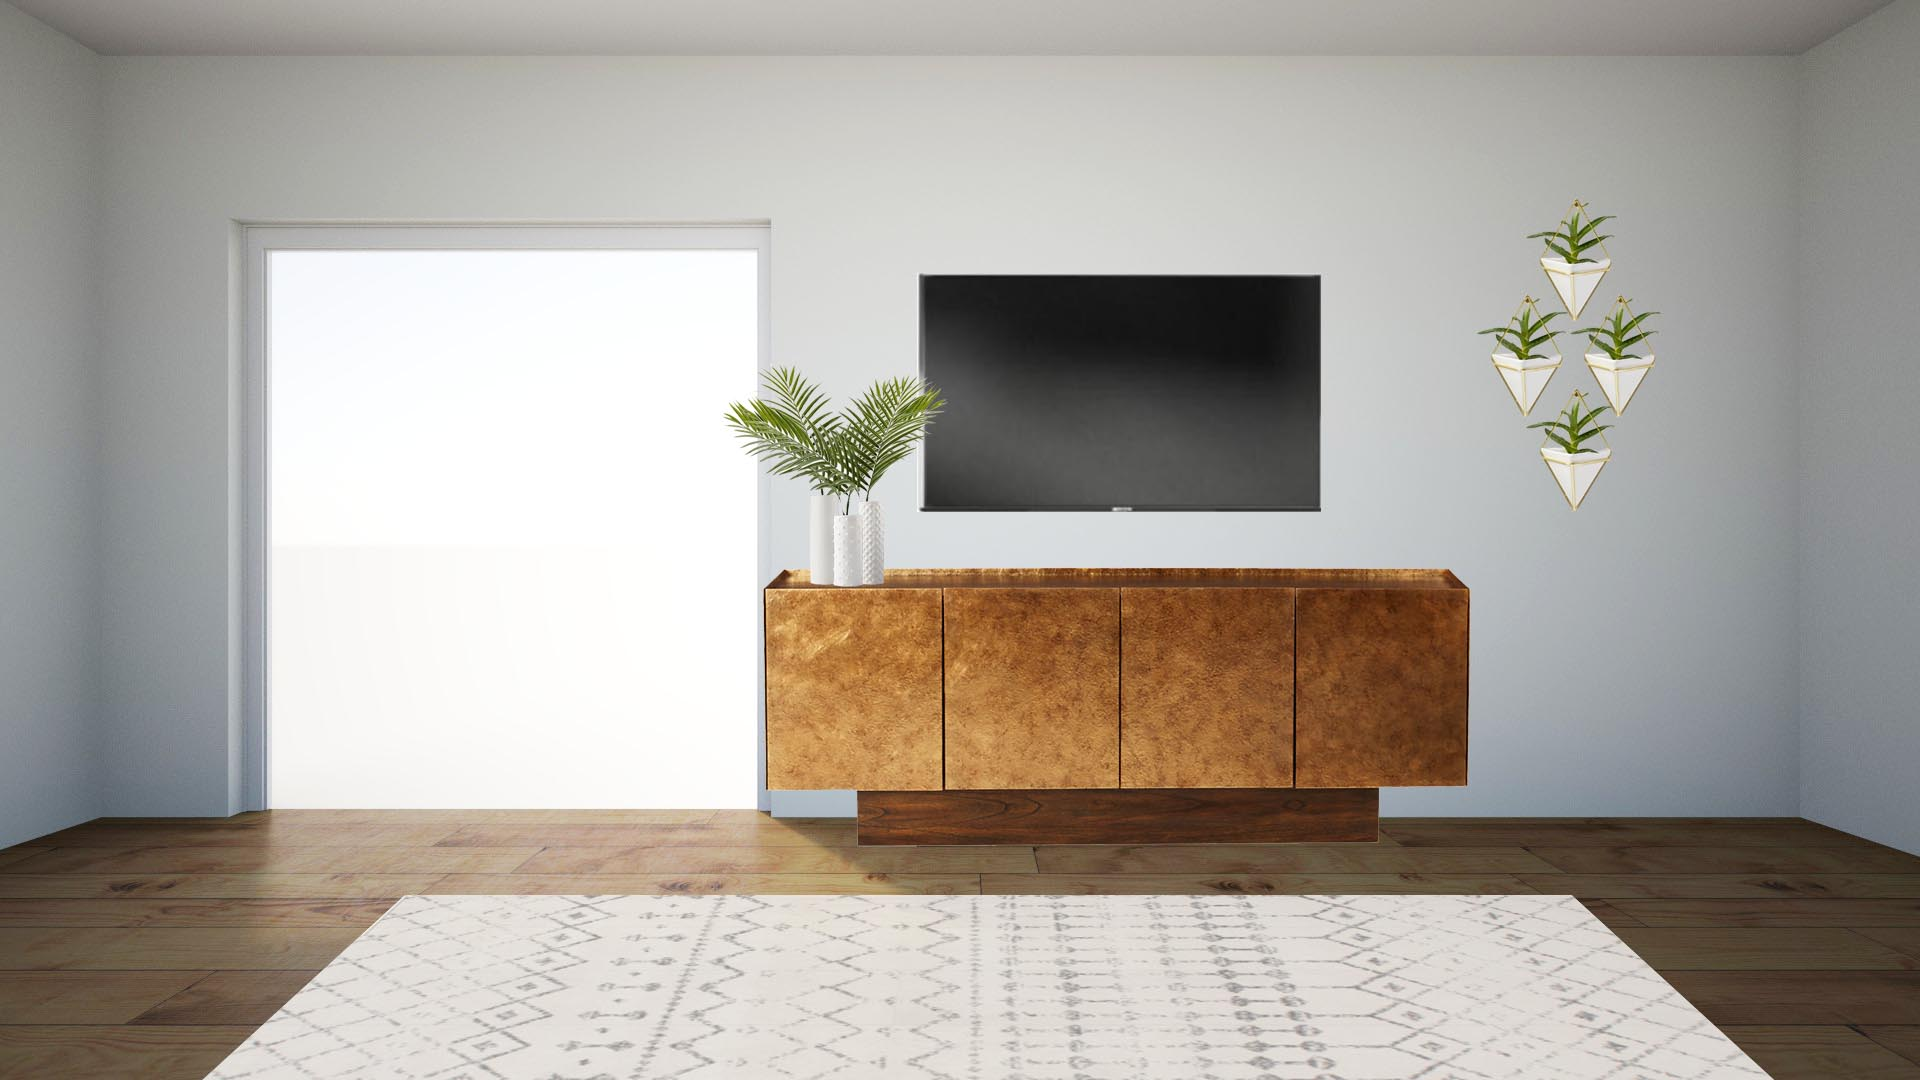 """SETUP INSTRUCTIONS:  Place gold cabinet as shown in floor plan  VASES: Layer with largest in the back left, smallest in the middle, and medium sized to the right. There will probably be 1 or 2"""" in between each one. Place a faux palm leaf in each vase.  TV: Mount  WALL DECOR: Order 2 sets (see shopping list below) of planters and hang in a diamond pattern. Hang the top one about 6"""" above tv height and layer the others below with about 6-8"""" between each. Let me know if you need help with this. I'm happy to draw a little diagram."""